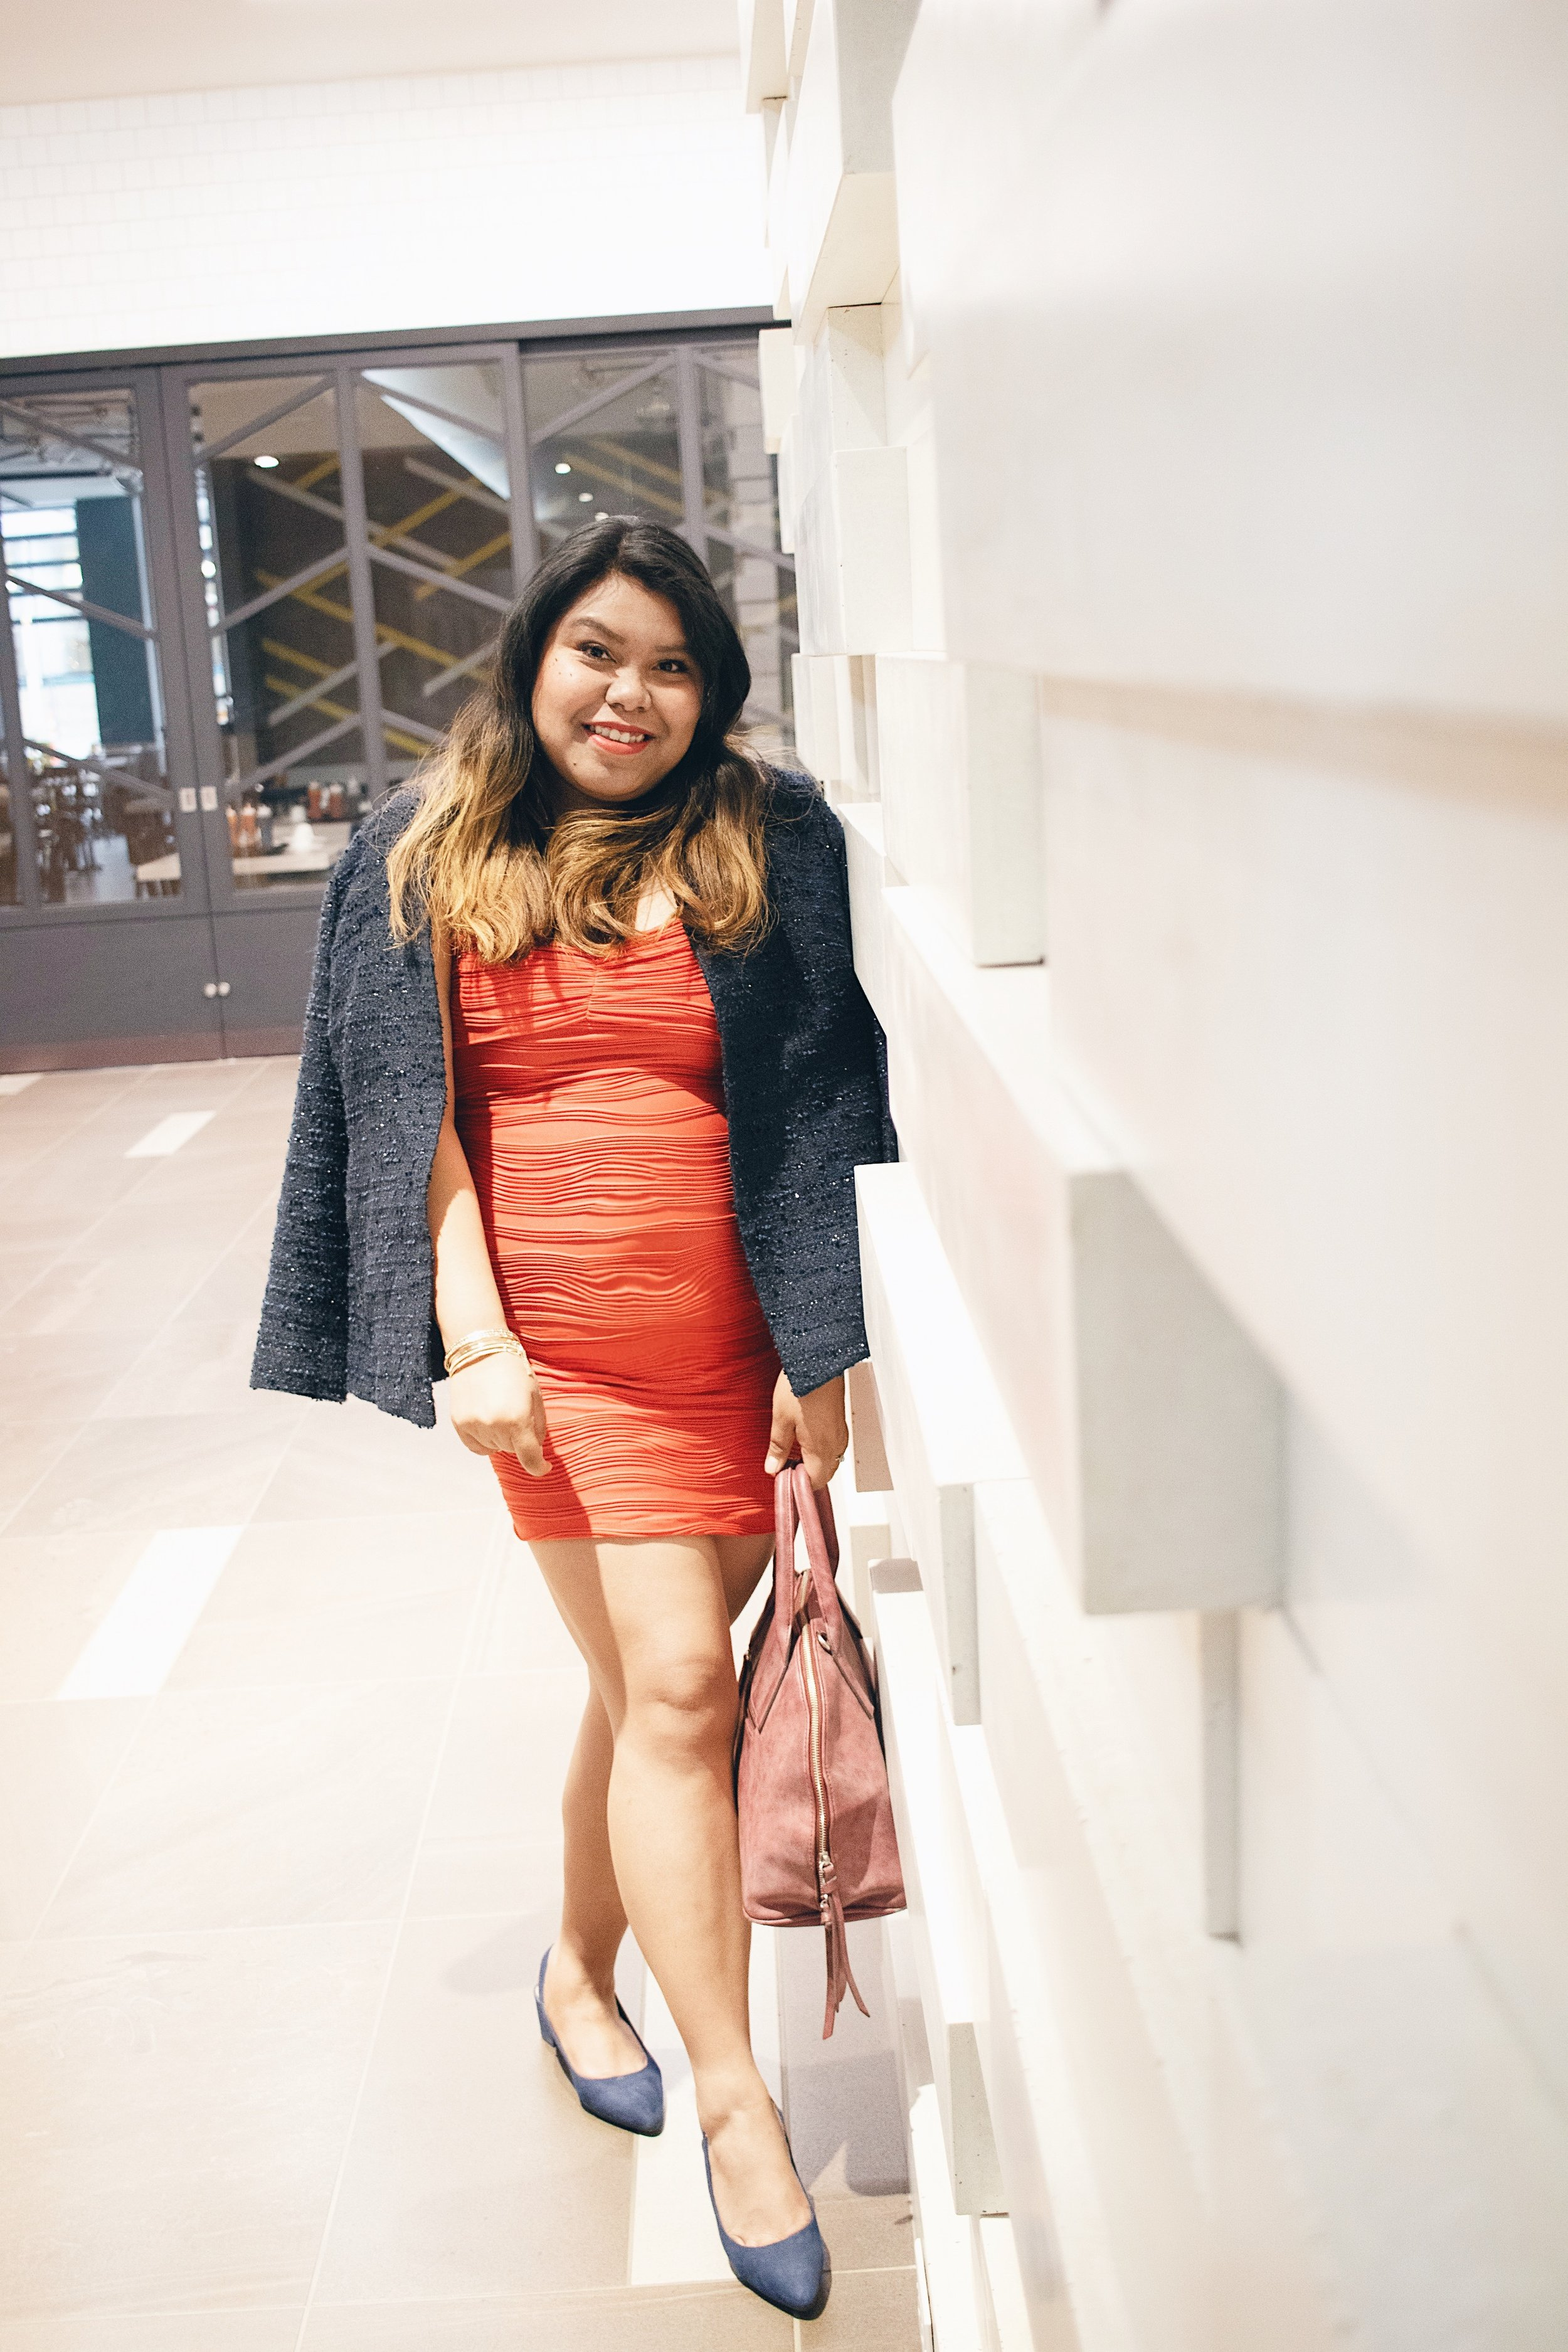 value village fashion, value village finds, thrift store finds, thrift store fashion, thrift shop fashion haul, style on a budget, thrift store outfit ideas, thrift store shopping, date night outfit from thrift store, classy date night outfit ideas